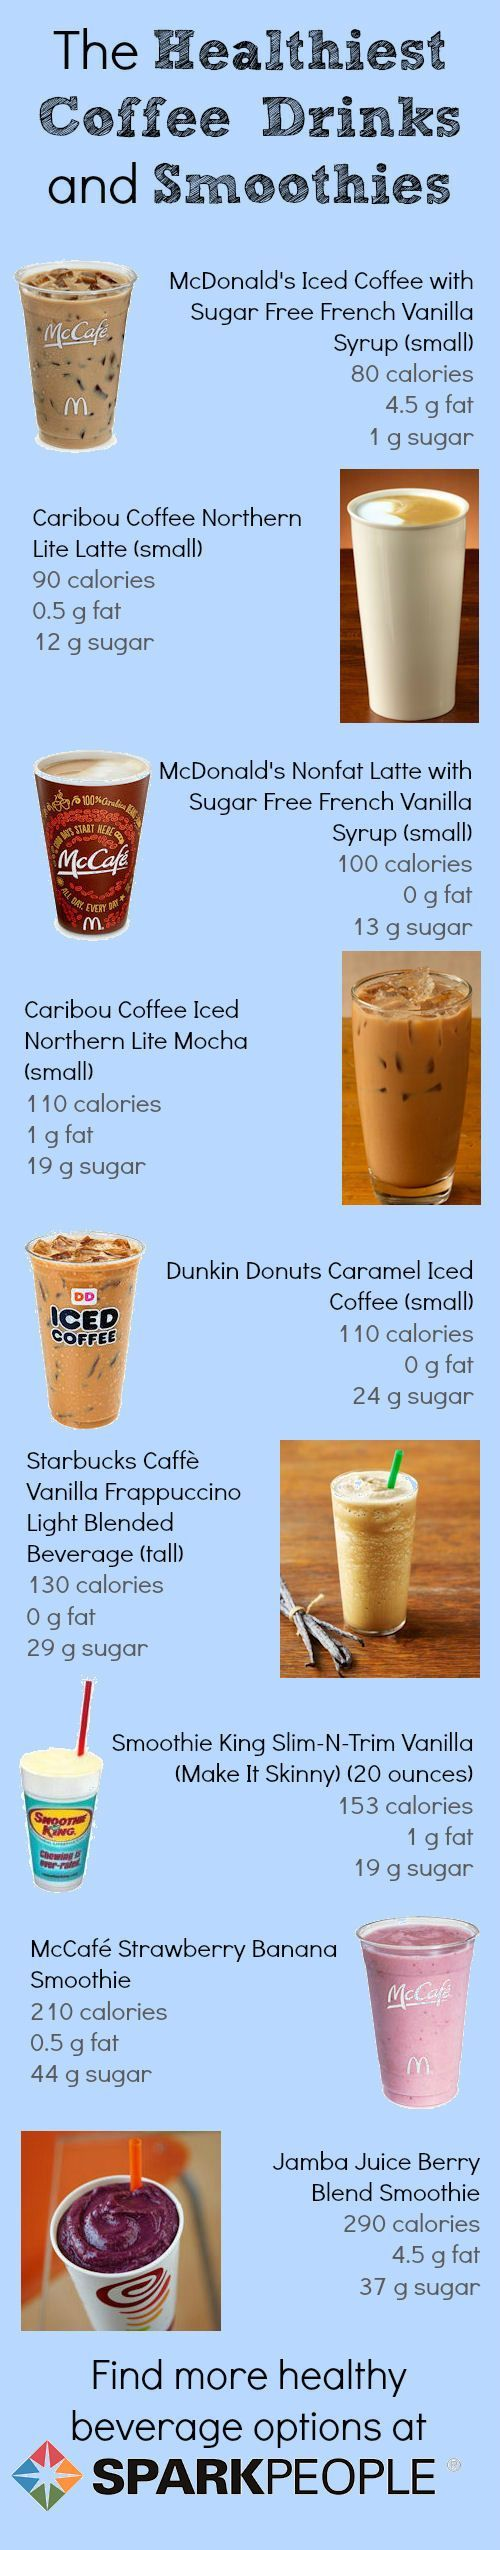 The 9 Healthiest Coffee Drinks and Smoothies   via @SparkPeople